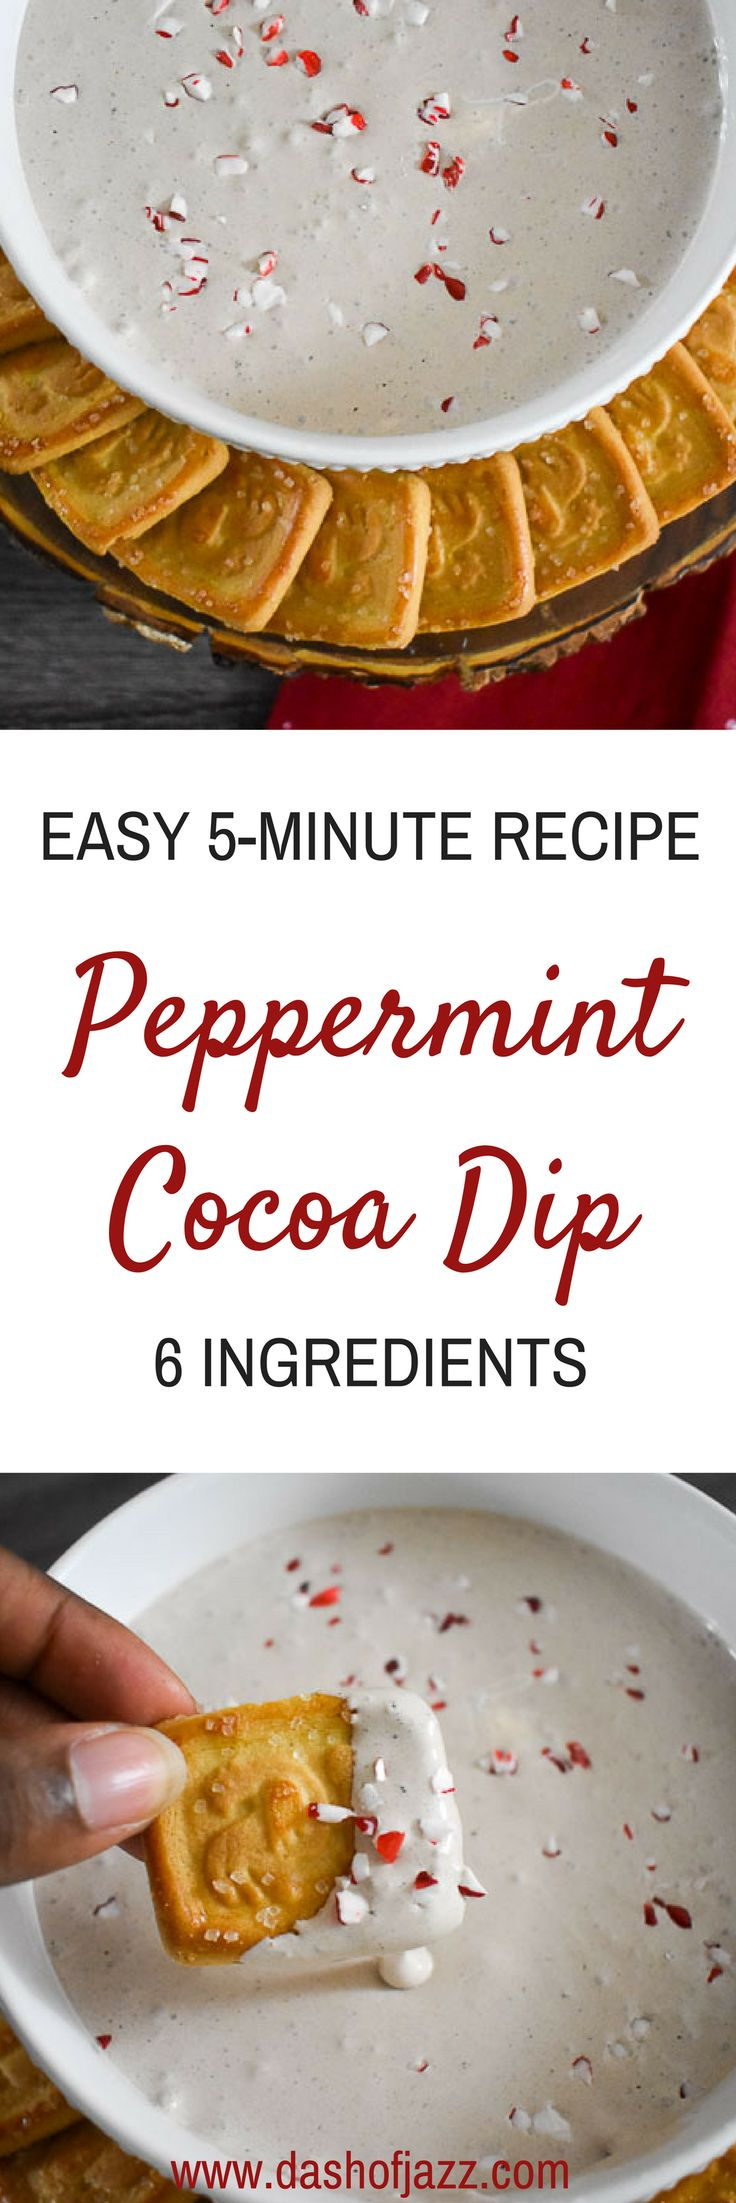 An easy, six-ingredient peppermint cocoa dip recipe perfect for the holidays! Recipe by Dash of Jazz #MyItalianMoment #ad #appetizer #ChristmasRecipe via @dashofjazzblog